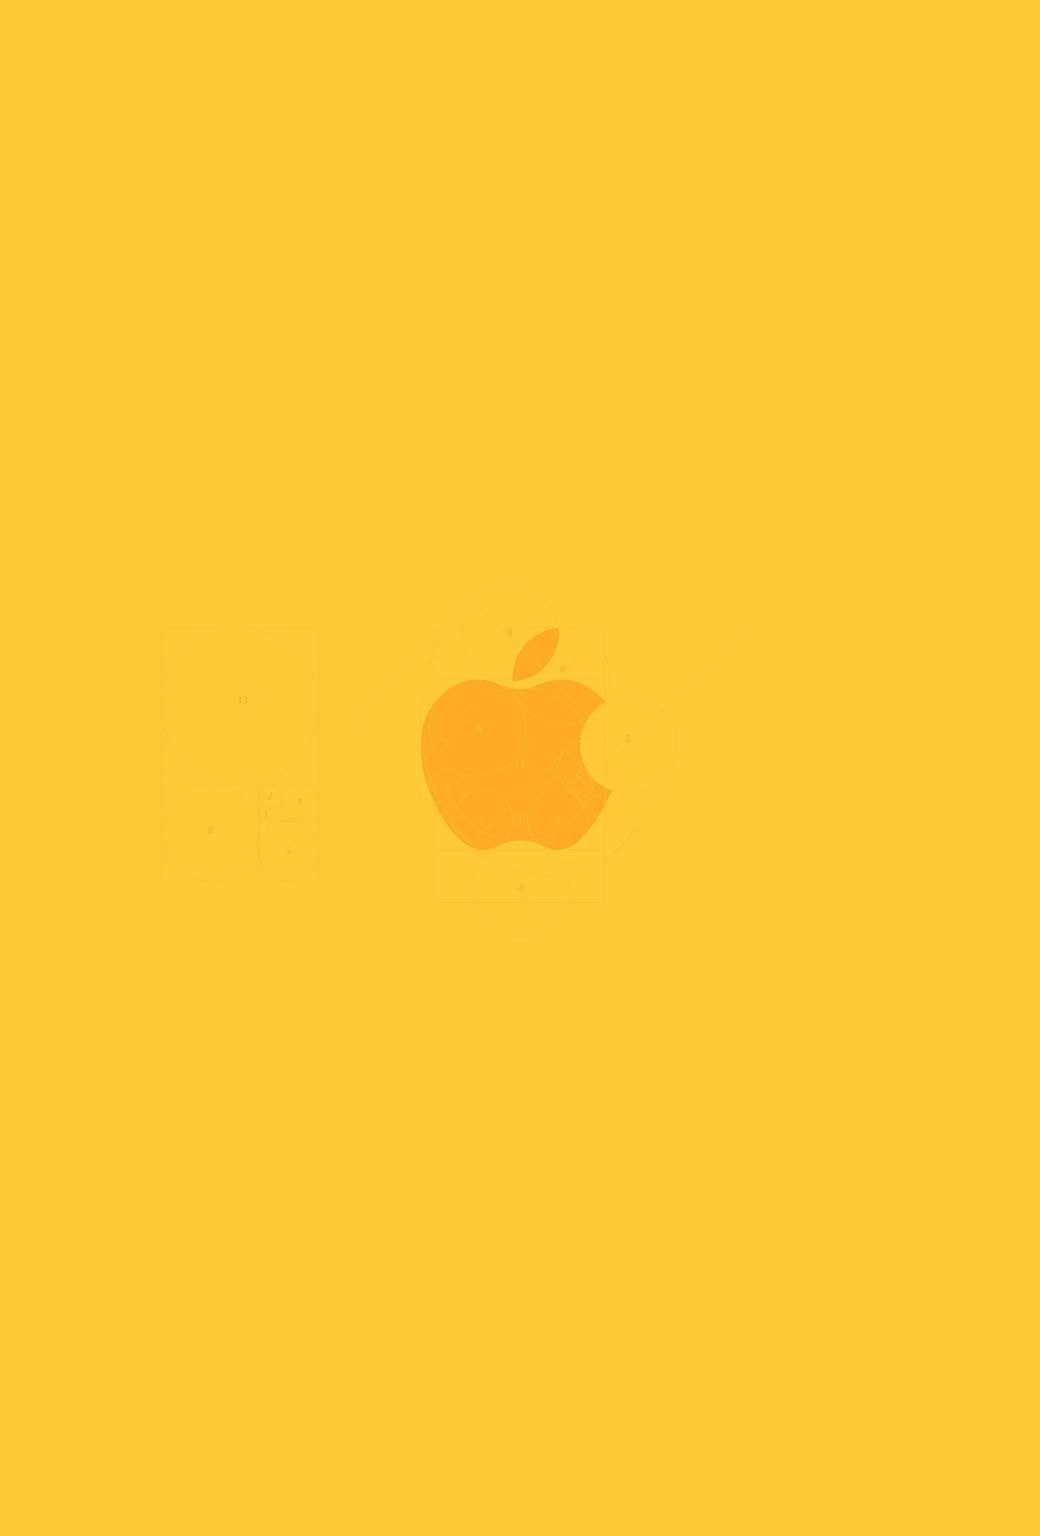 yellow wallpaper for iphone - Bing images | Apple Love! in 2019 | Pinterest | Iphone wallpaper ...